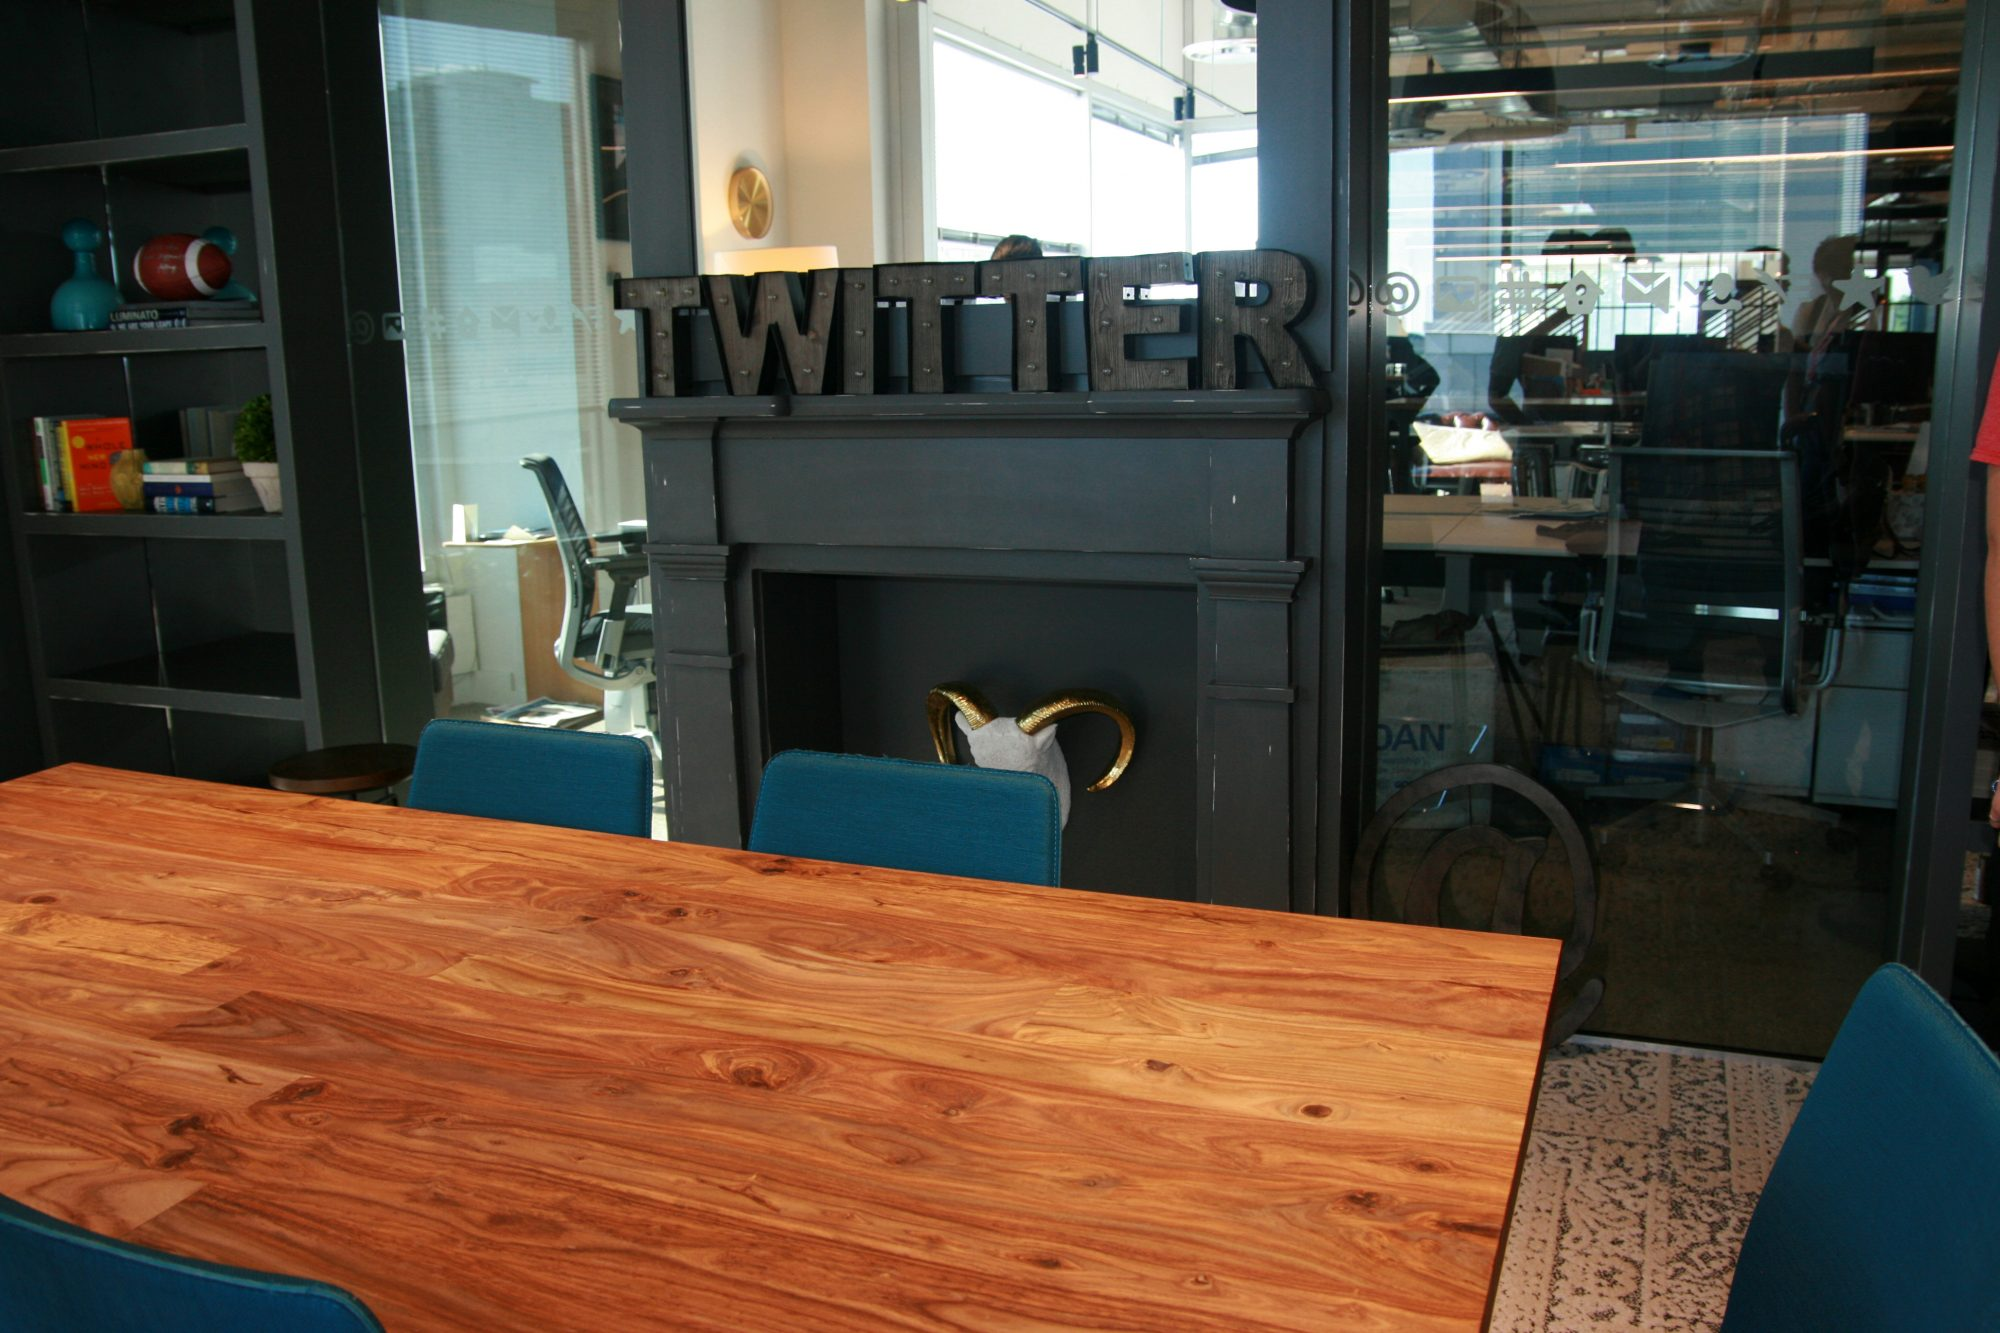 Twitter office slideshow 14